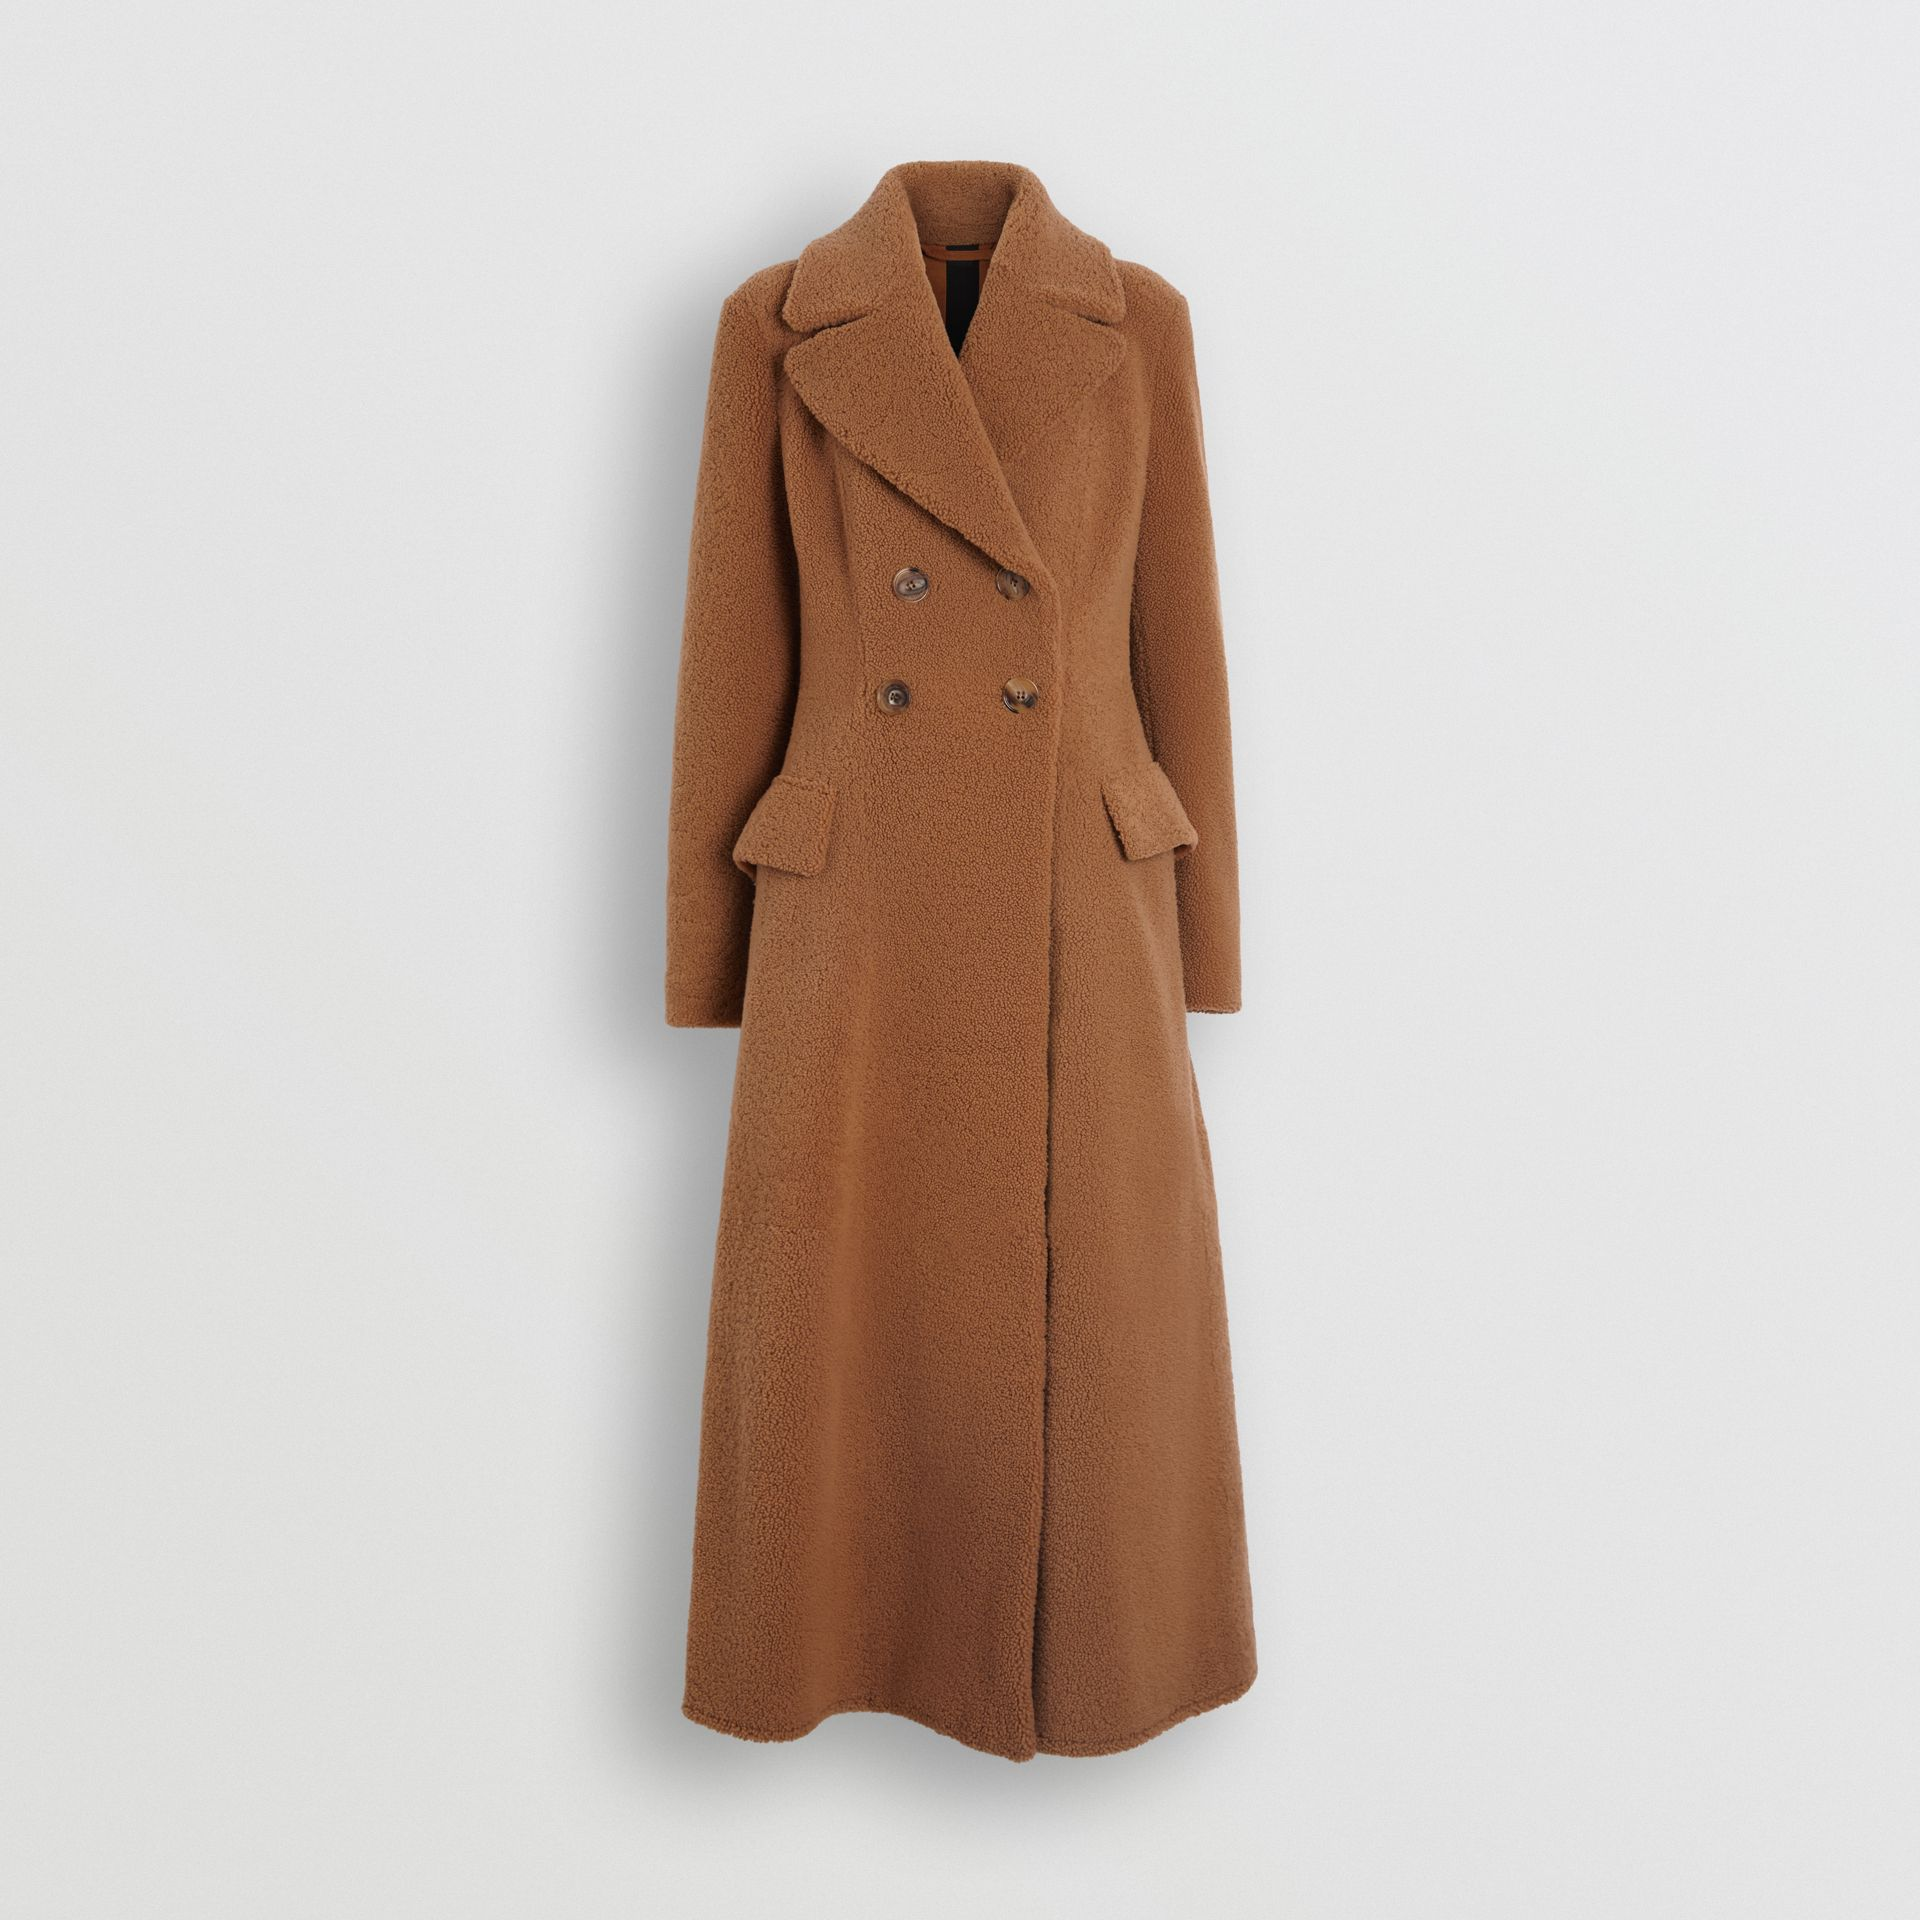 Shearling Tailored Coat in Caramel - Women | Burberry - gallery image 3